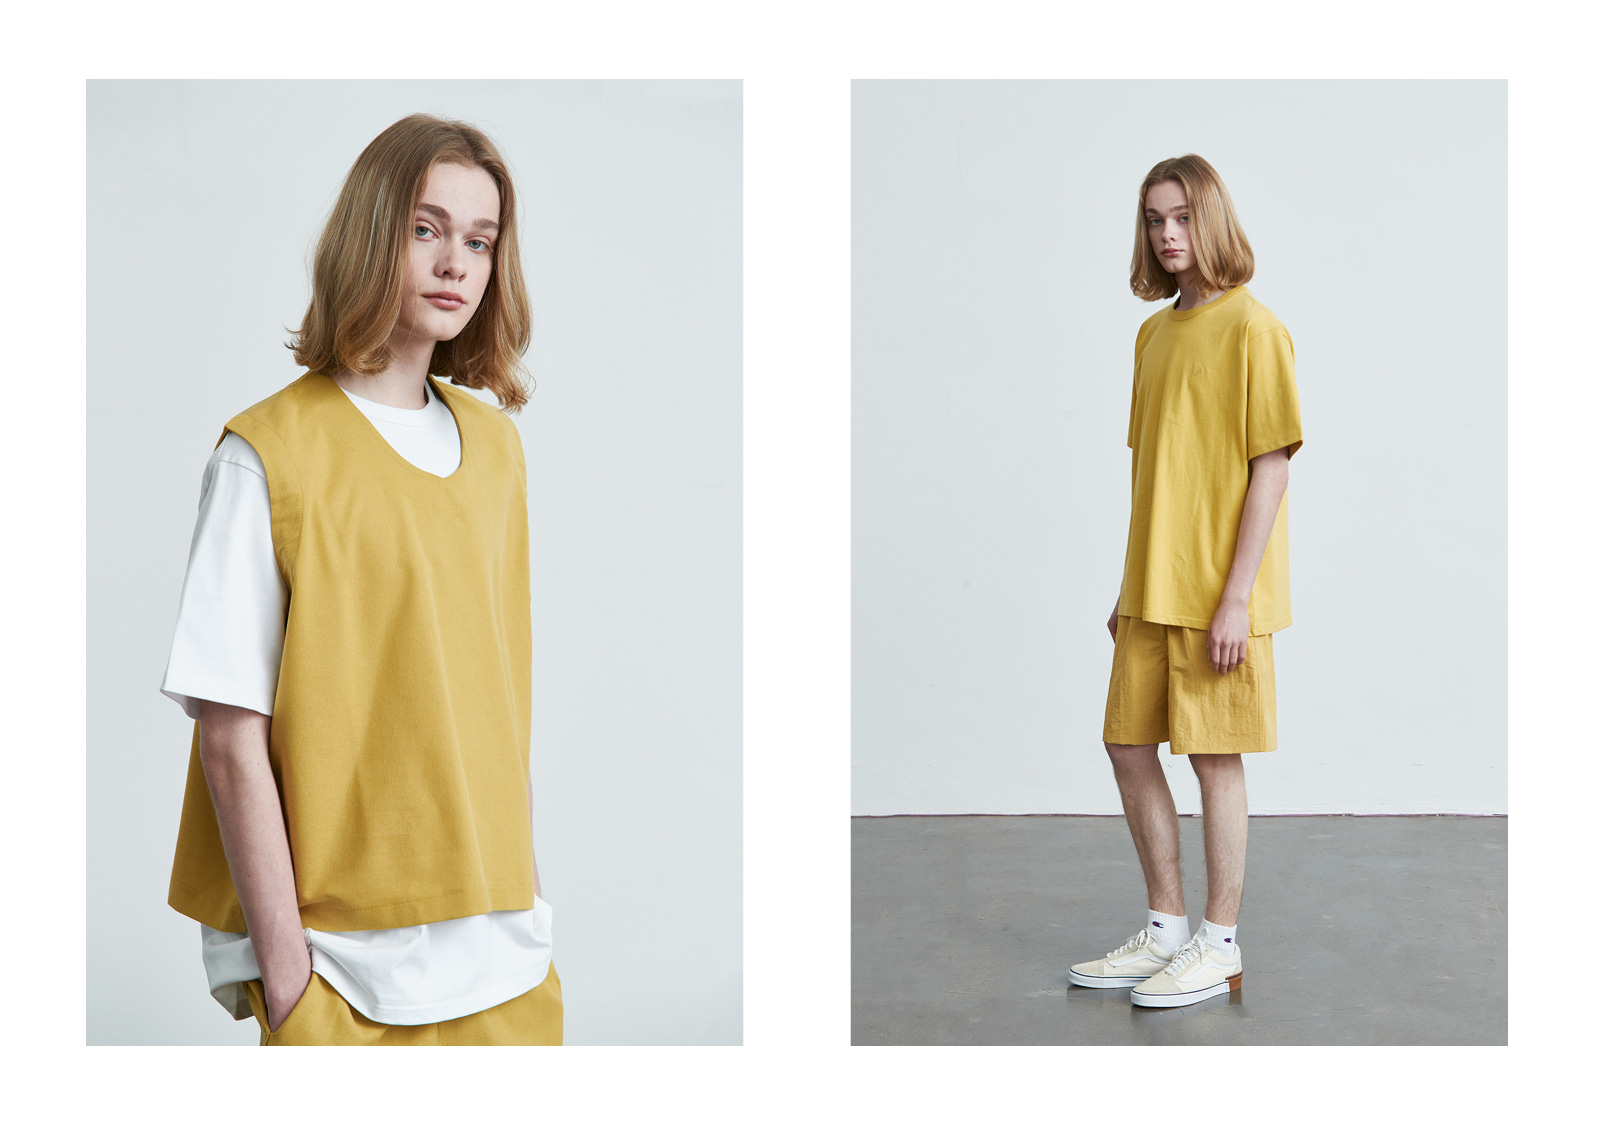 2020 S/S COLLECTION#1 LOOKBOOK